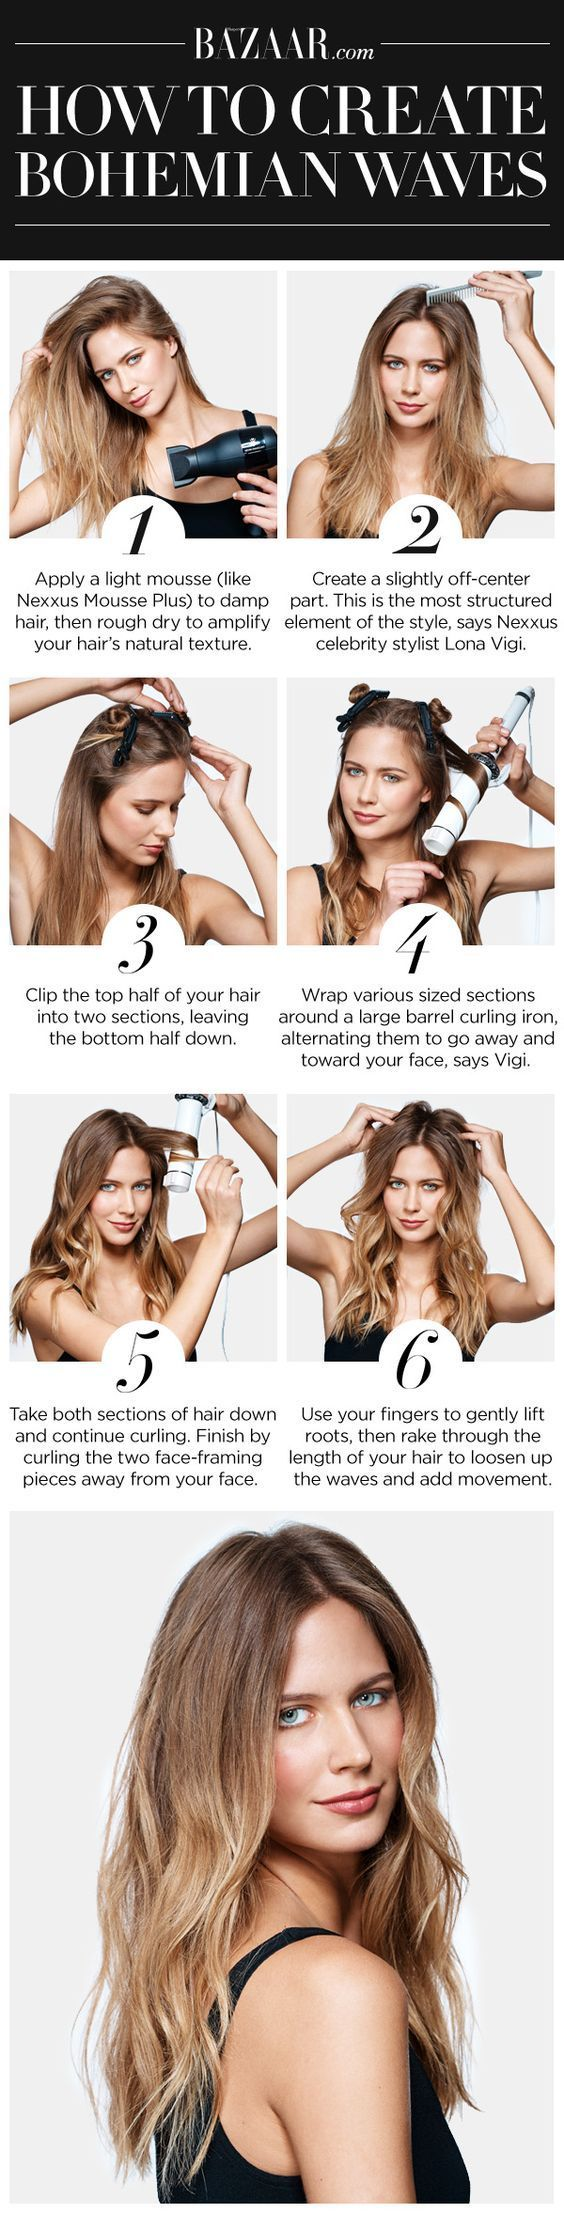 awesome Relaxed waves aren't just for the summer; pair them with fall's suedes a... by http://www.danahaircuts.xyz/hair-tutorials/relaxed-waves-arent-just-for-the-summer-pair-them-with-falls-suedes-a/